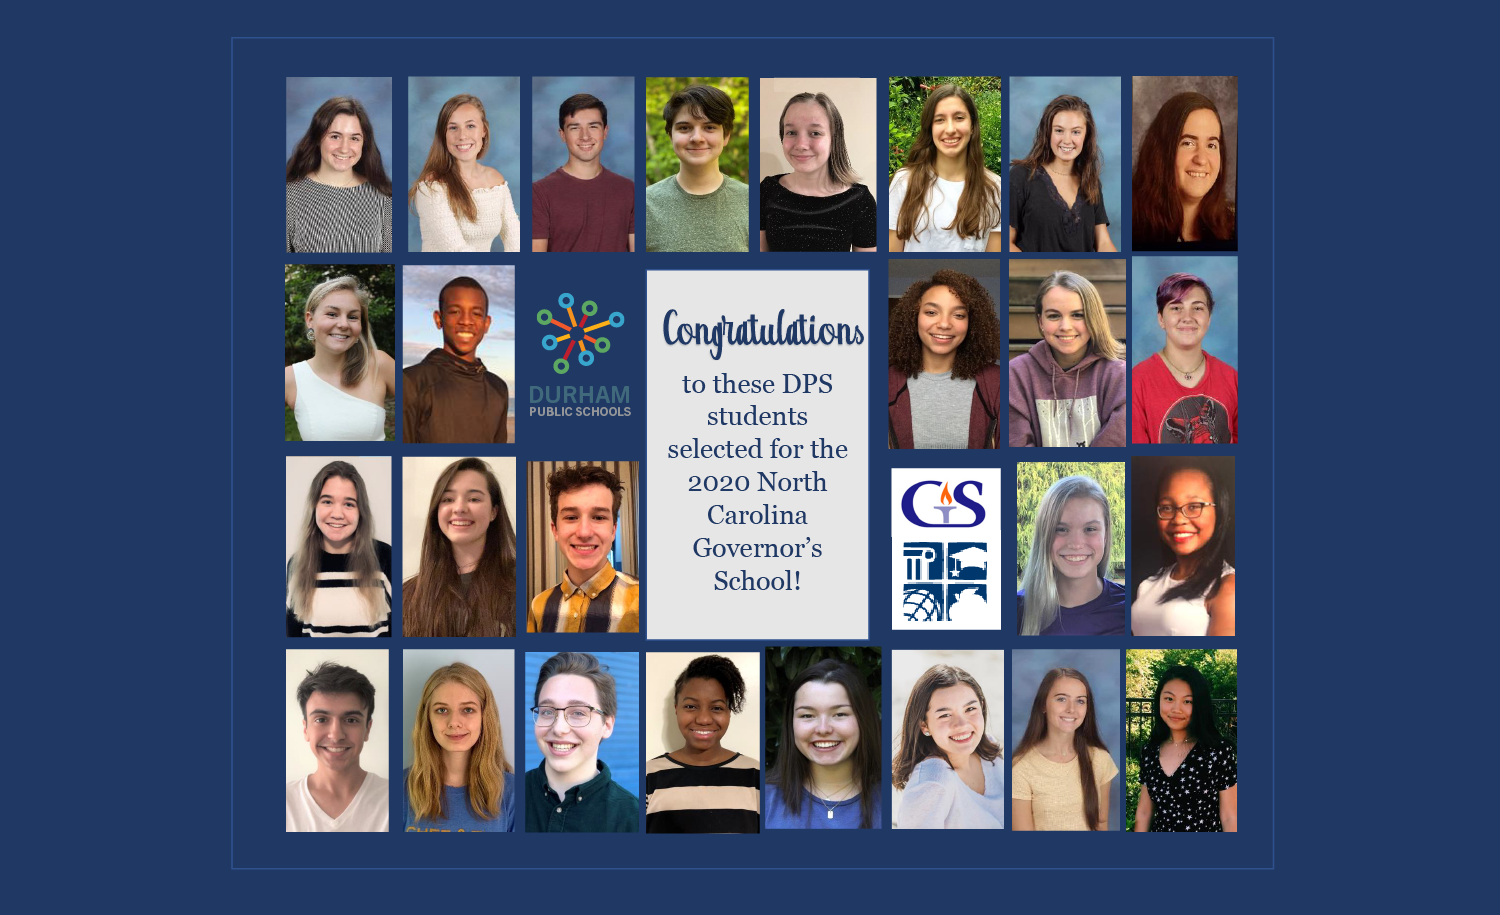 2020 North Carolina Governor's School Honorees